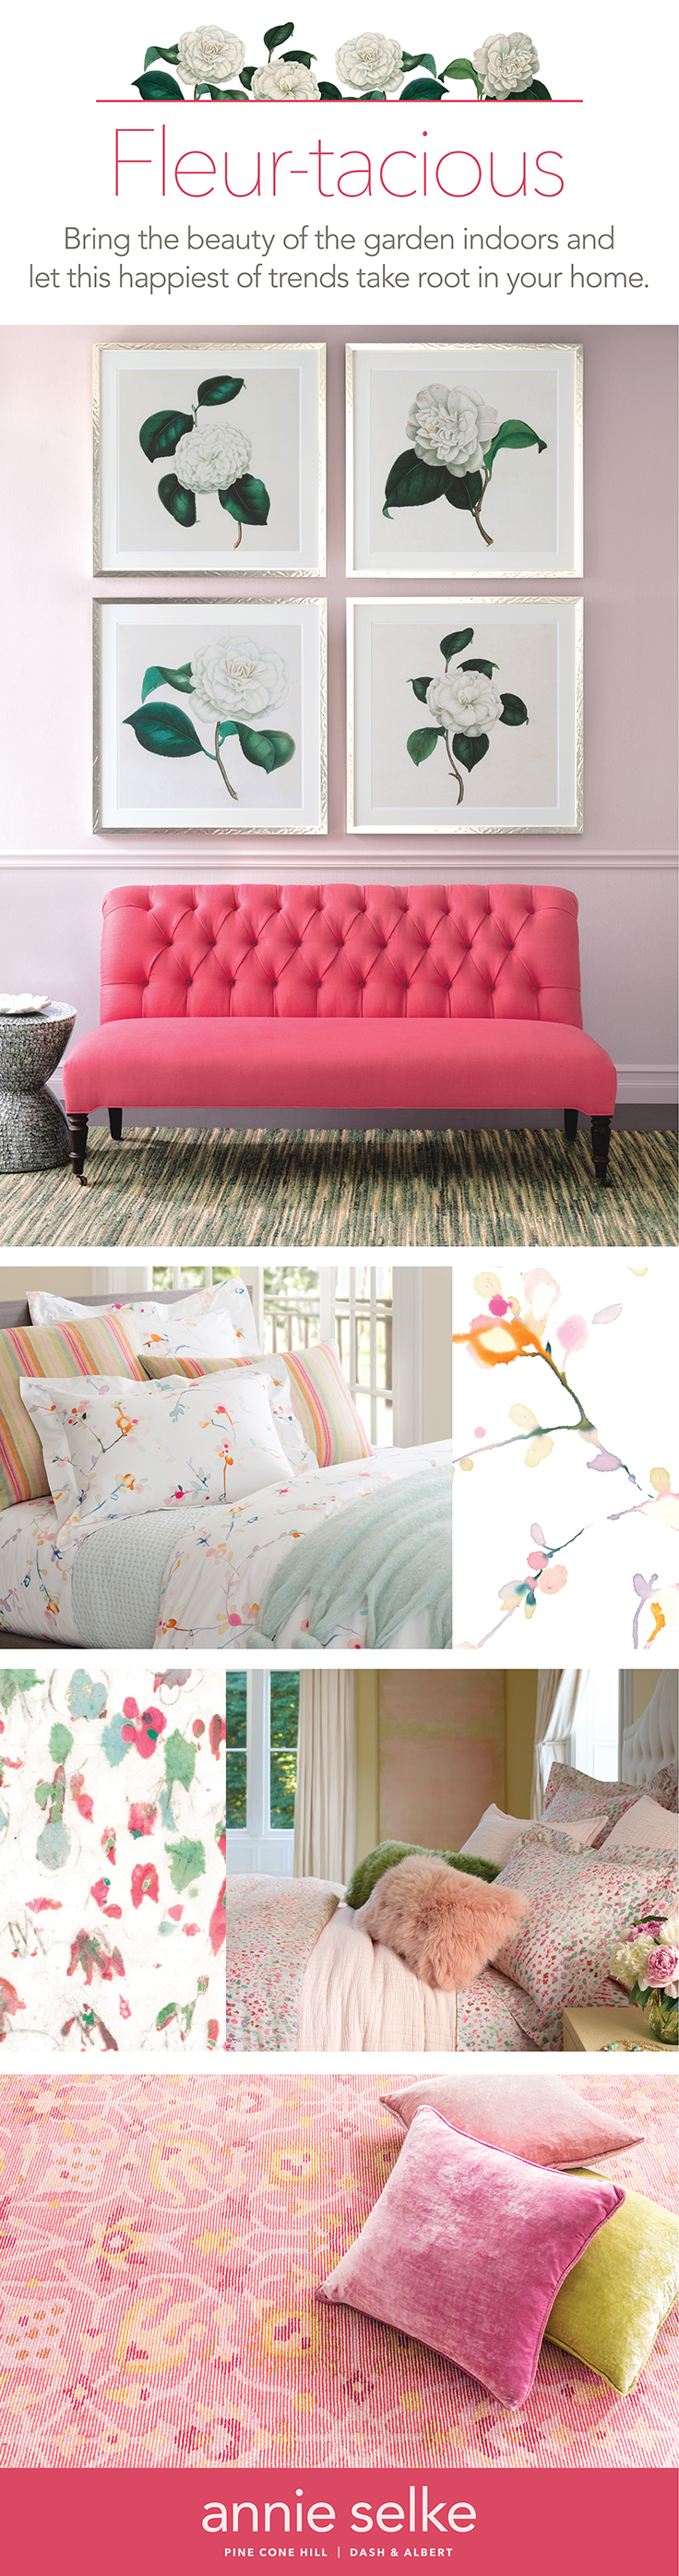 Getting Fleur-Tacious! Bring Pops of Spring Into Your Rooms | Annie Selke's Fresh American Style